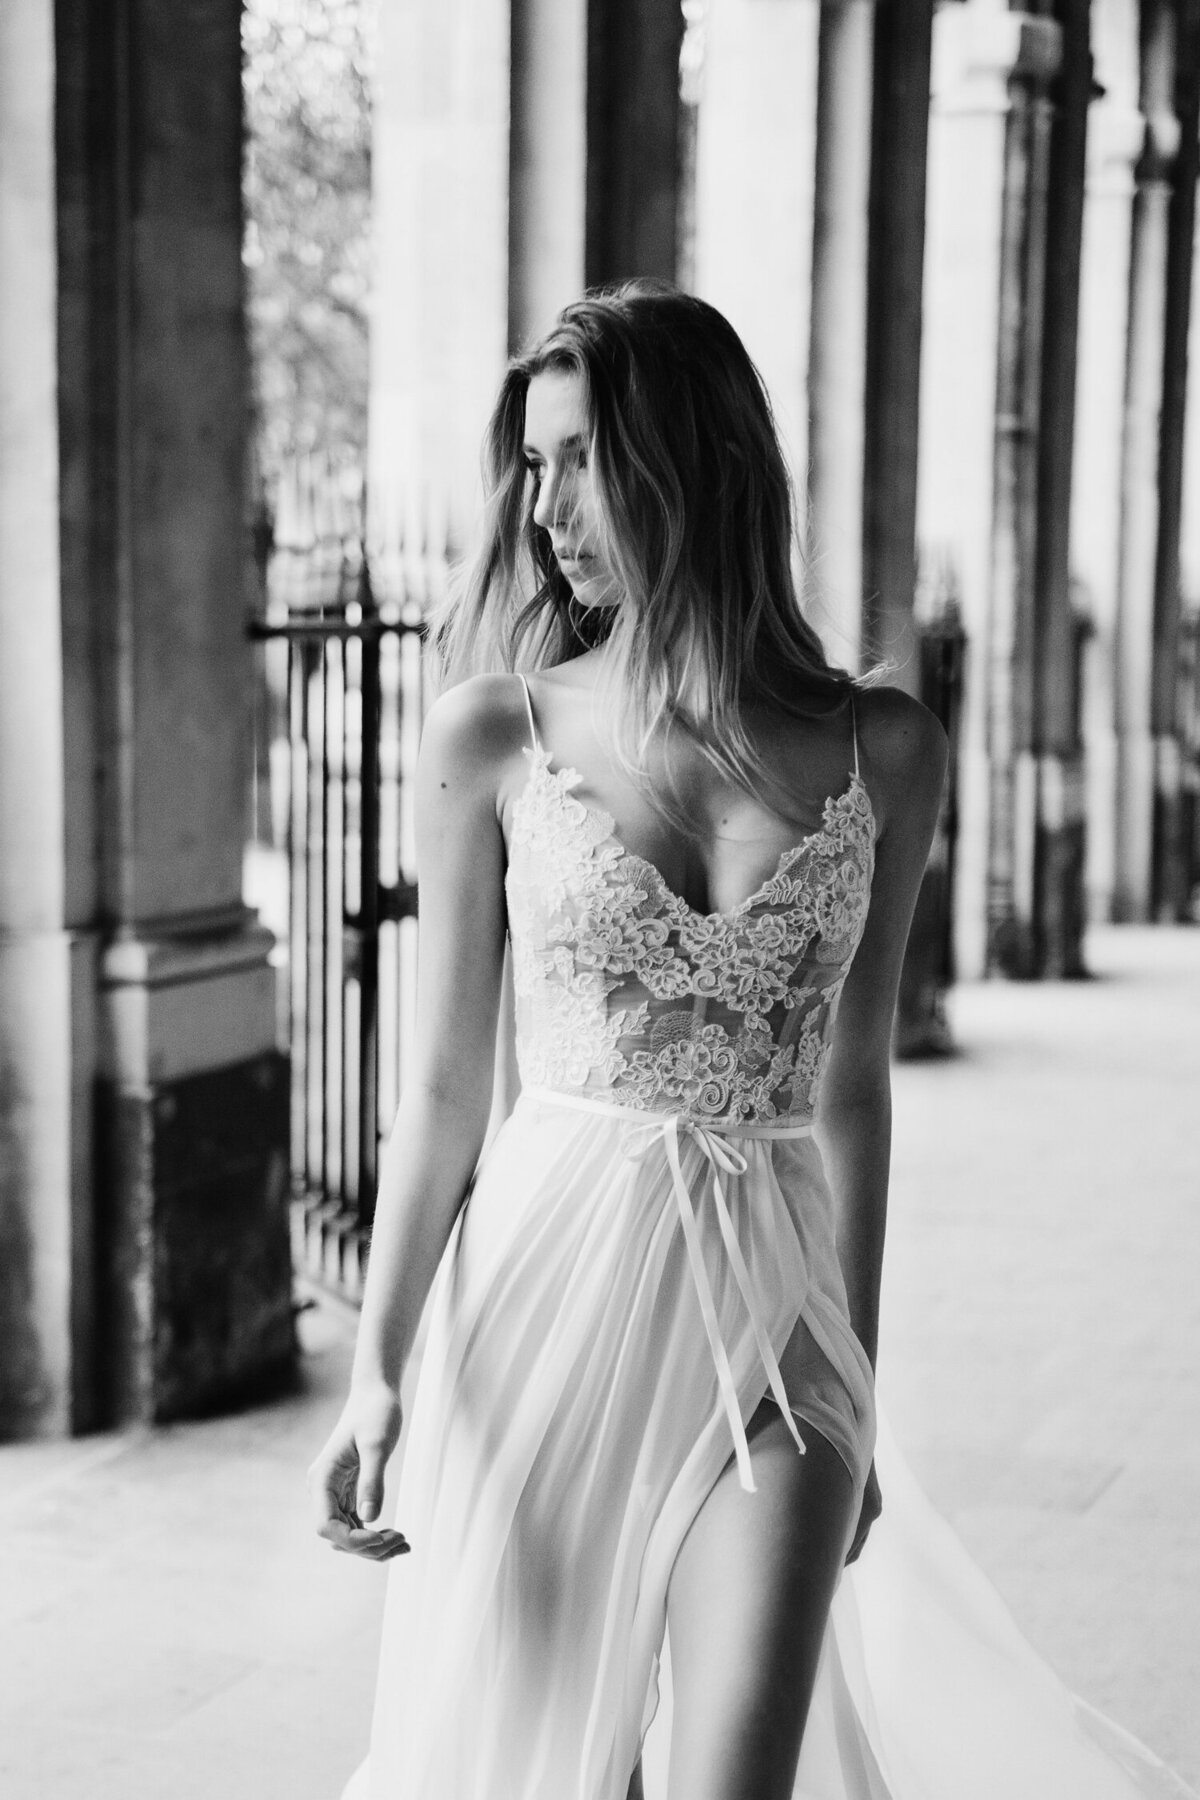 Katie Mitchell, Monique Lhuillier Bridal Paris France Wedding Trine Juel Hair and makeup 20